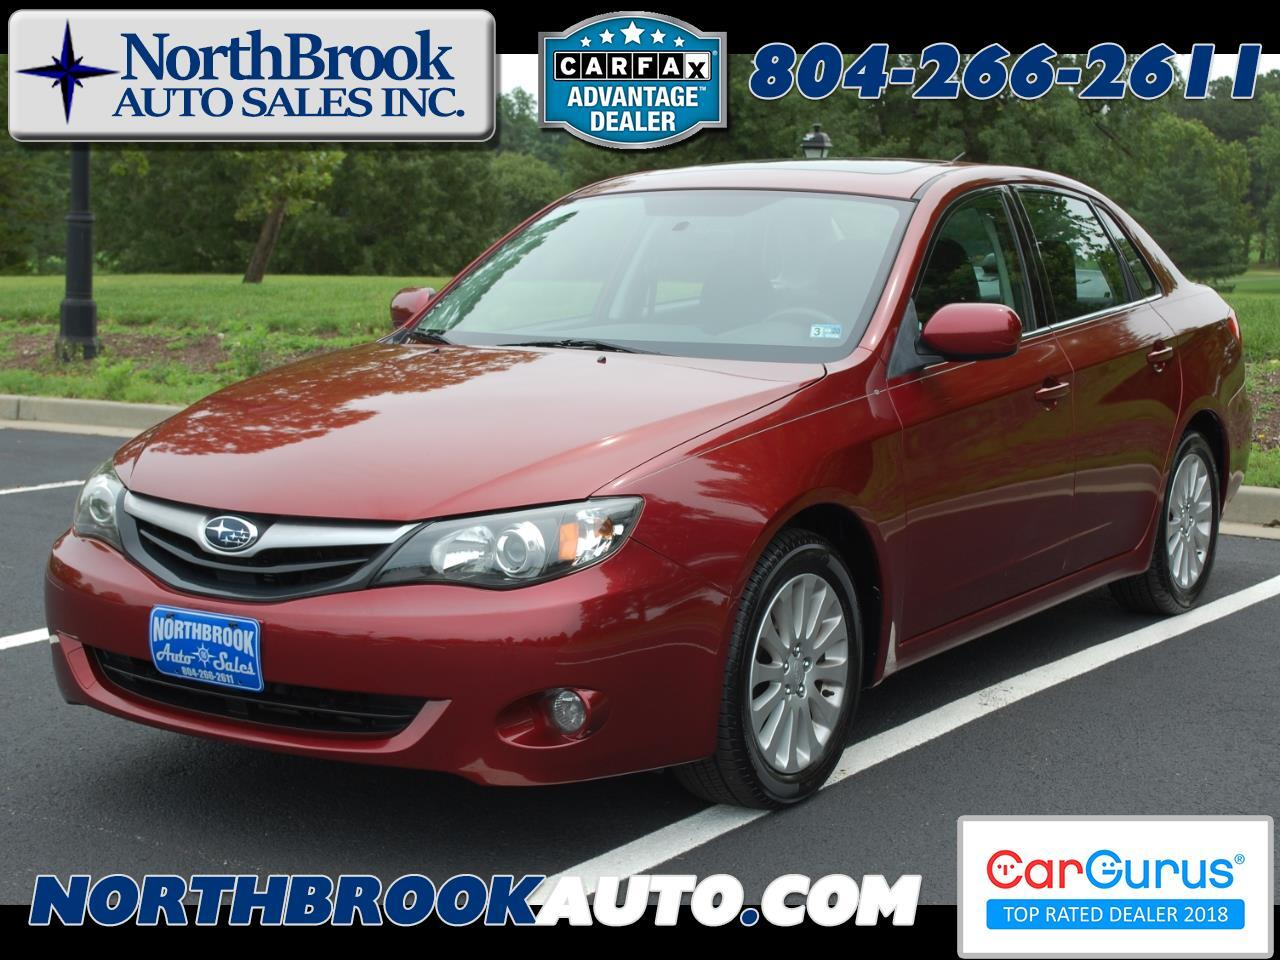 2011 Subaru Impreza Sedan 4dr Auto 2.5i Premium w/Pwr Moonroof Value Pkg